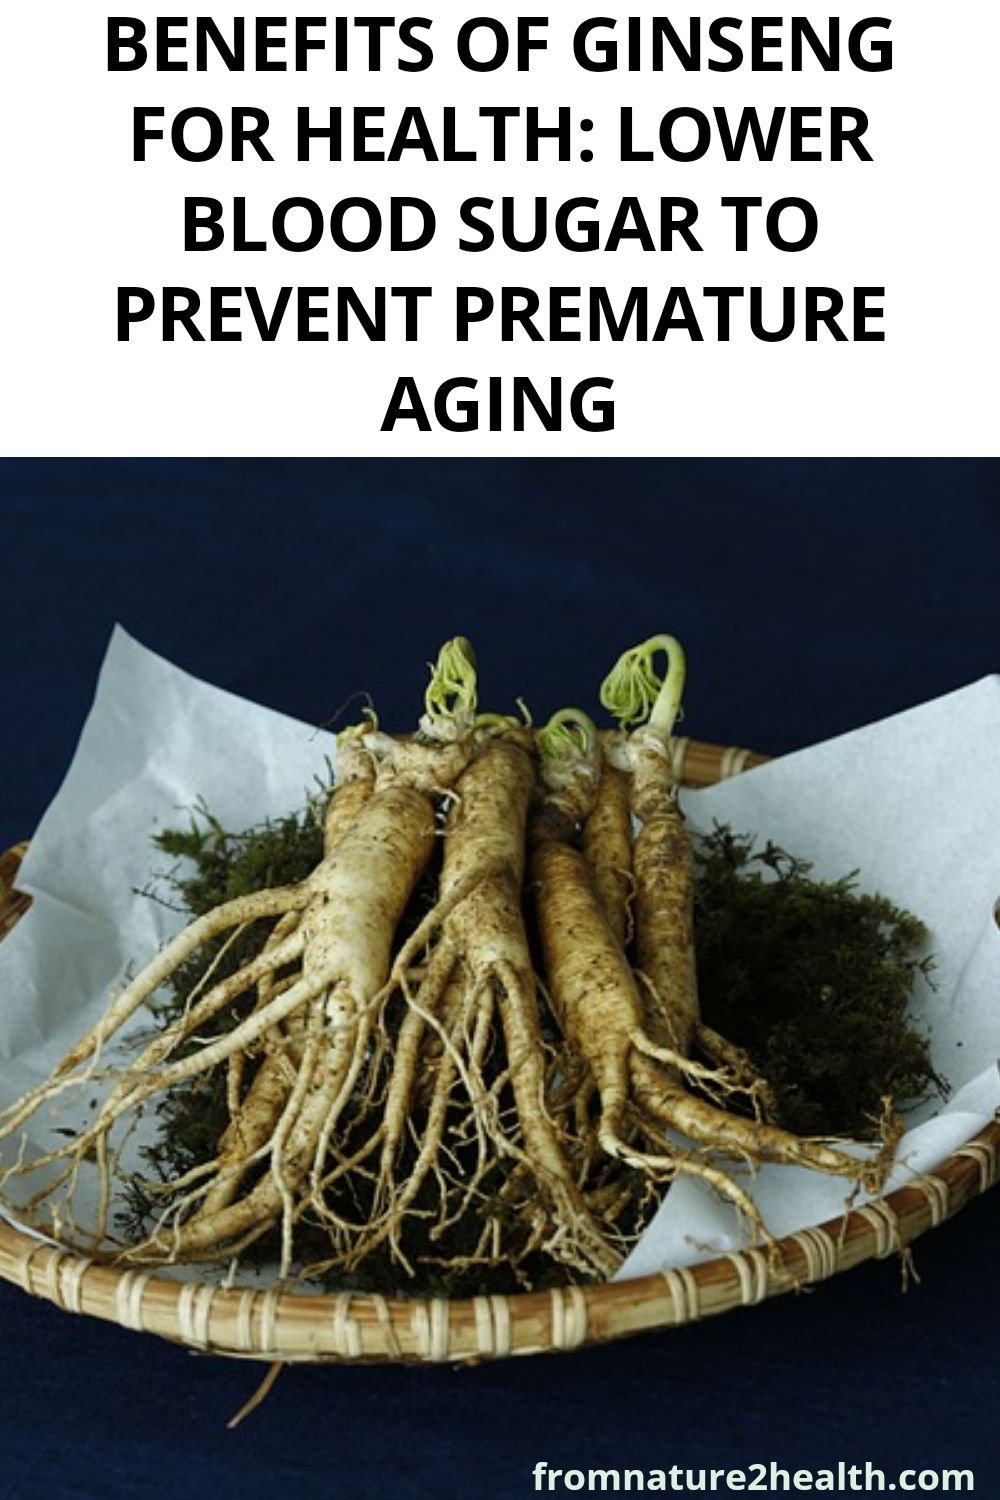 Benefits of Ginseng for Health: Lower Blood Sugar to Prevent Premature Aging